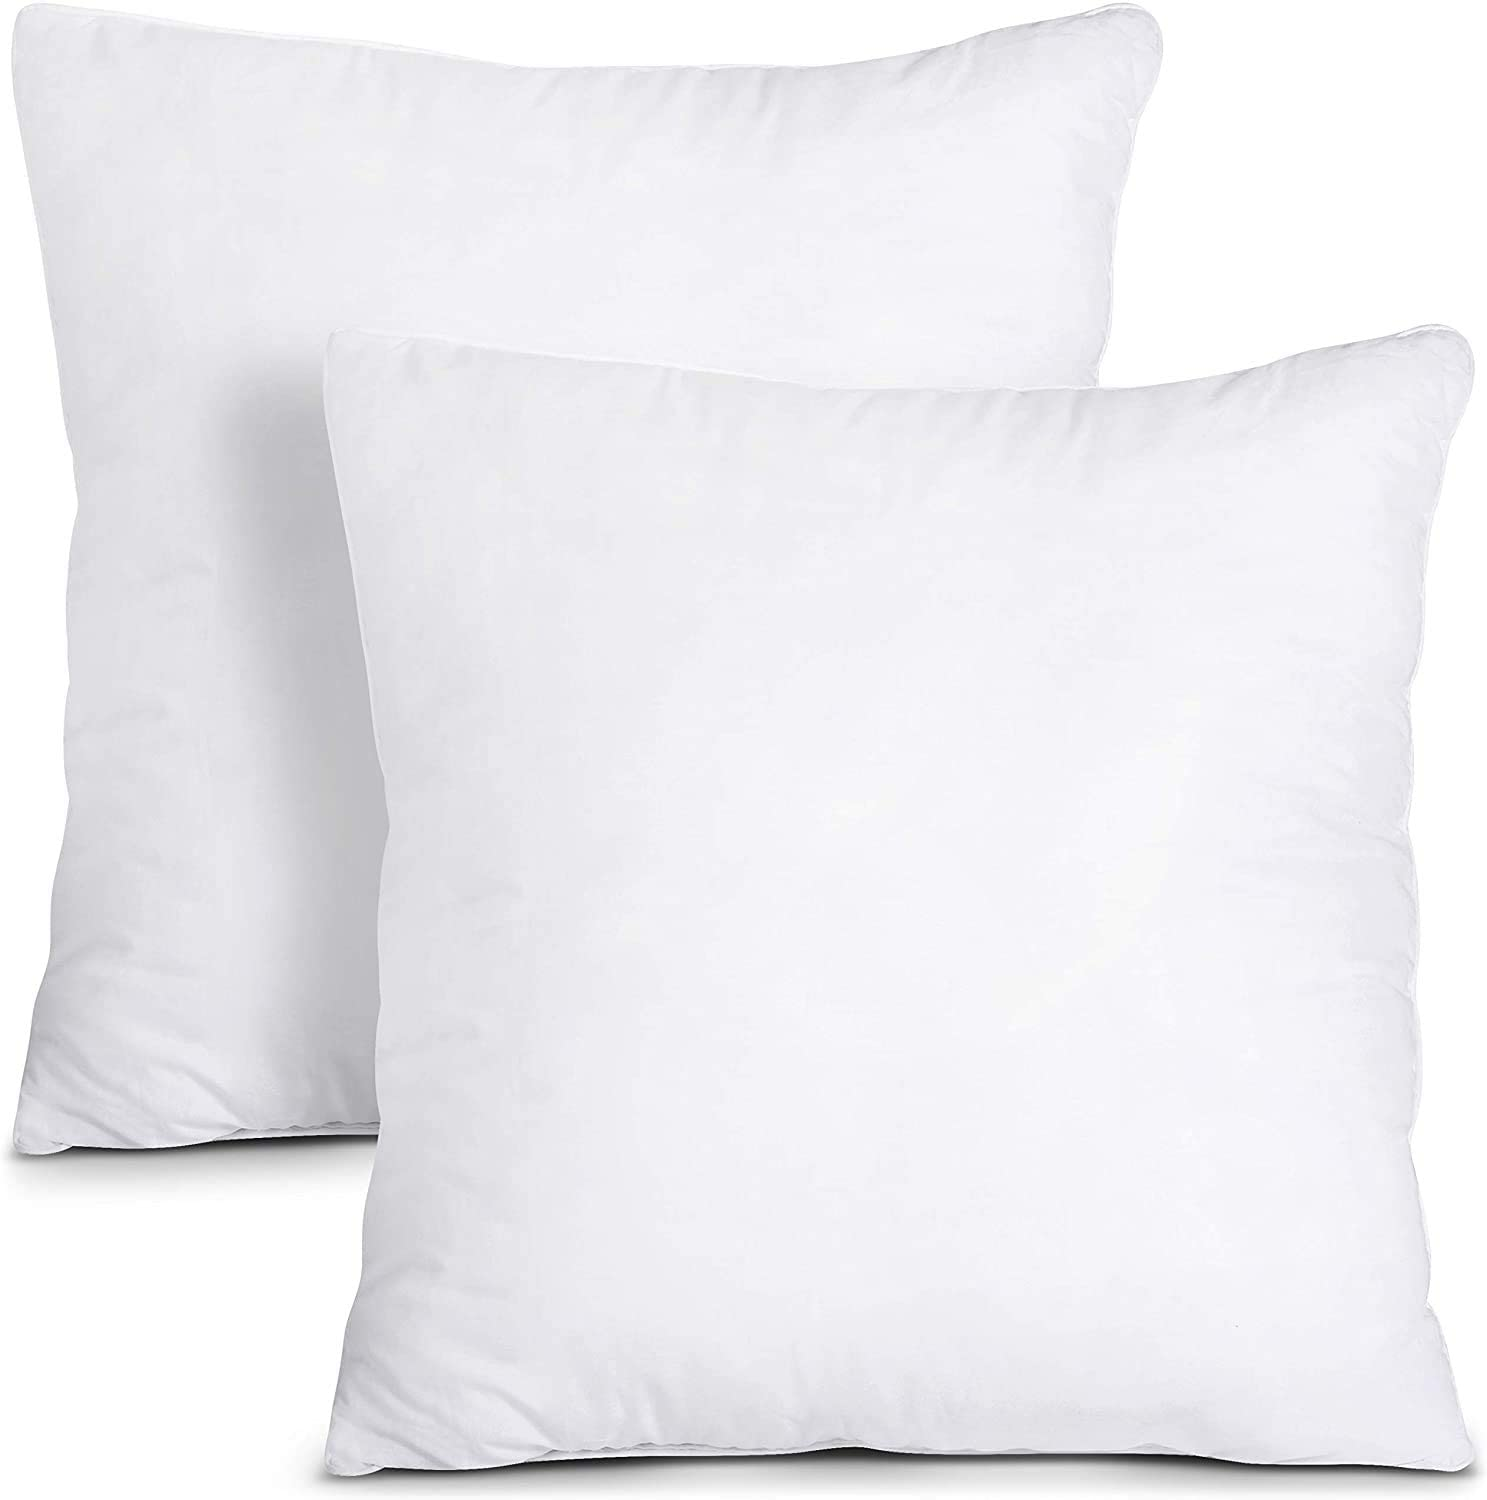 Utopia Bedding Throw Pillows Insert (Pack of 2, White) - 22 x 22 Inches Bed and Couch Pillows - Indoor Decorative Pillows